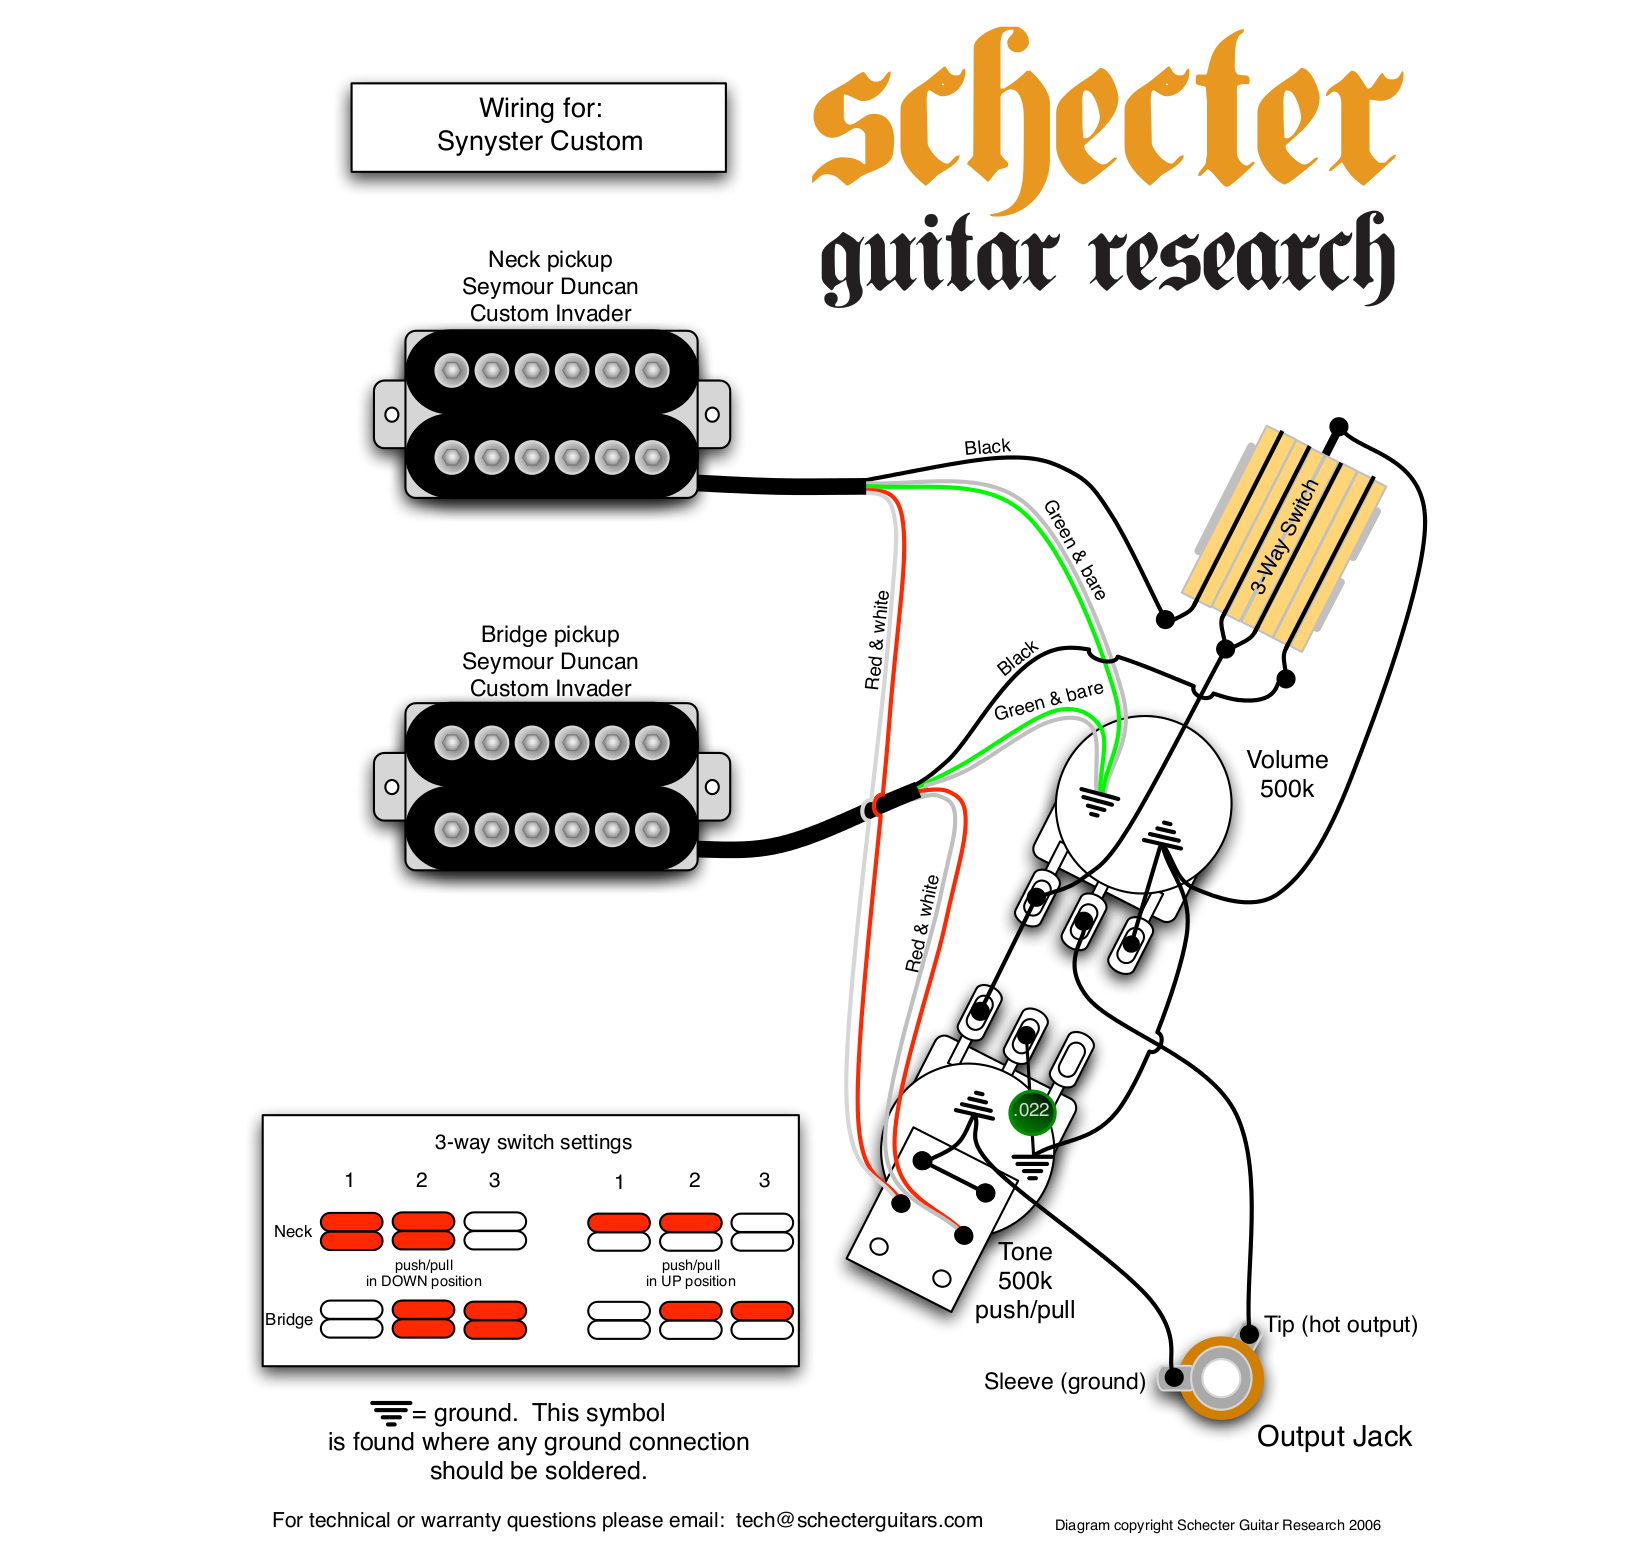 Schecter 006 Deluxe Wiring Diagram Similiar Diamond Series Pick Up Harness Toyota Diagram1982truck Pdf For Synyster Custom Guitar Manual